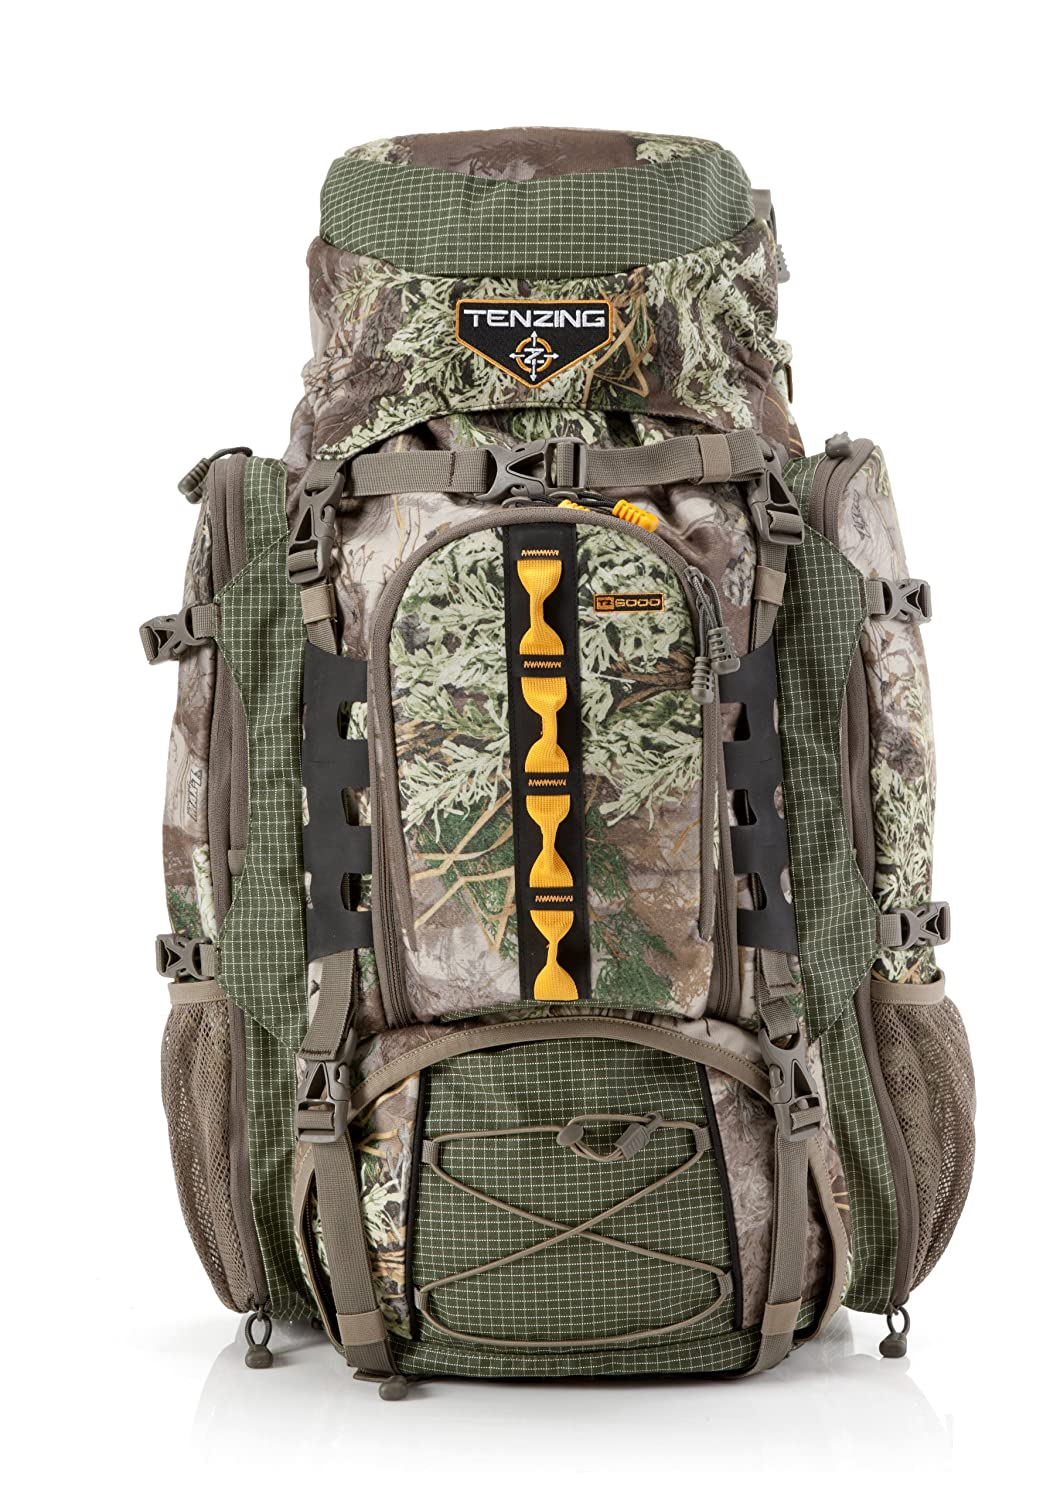 Tenzing 6000 Back Country Hunting and Hiking Pack review